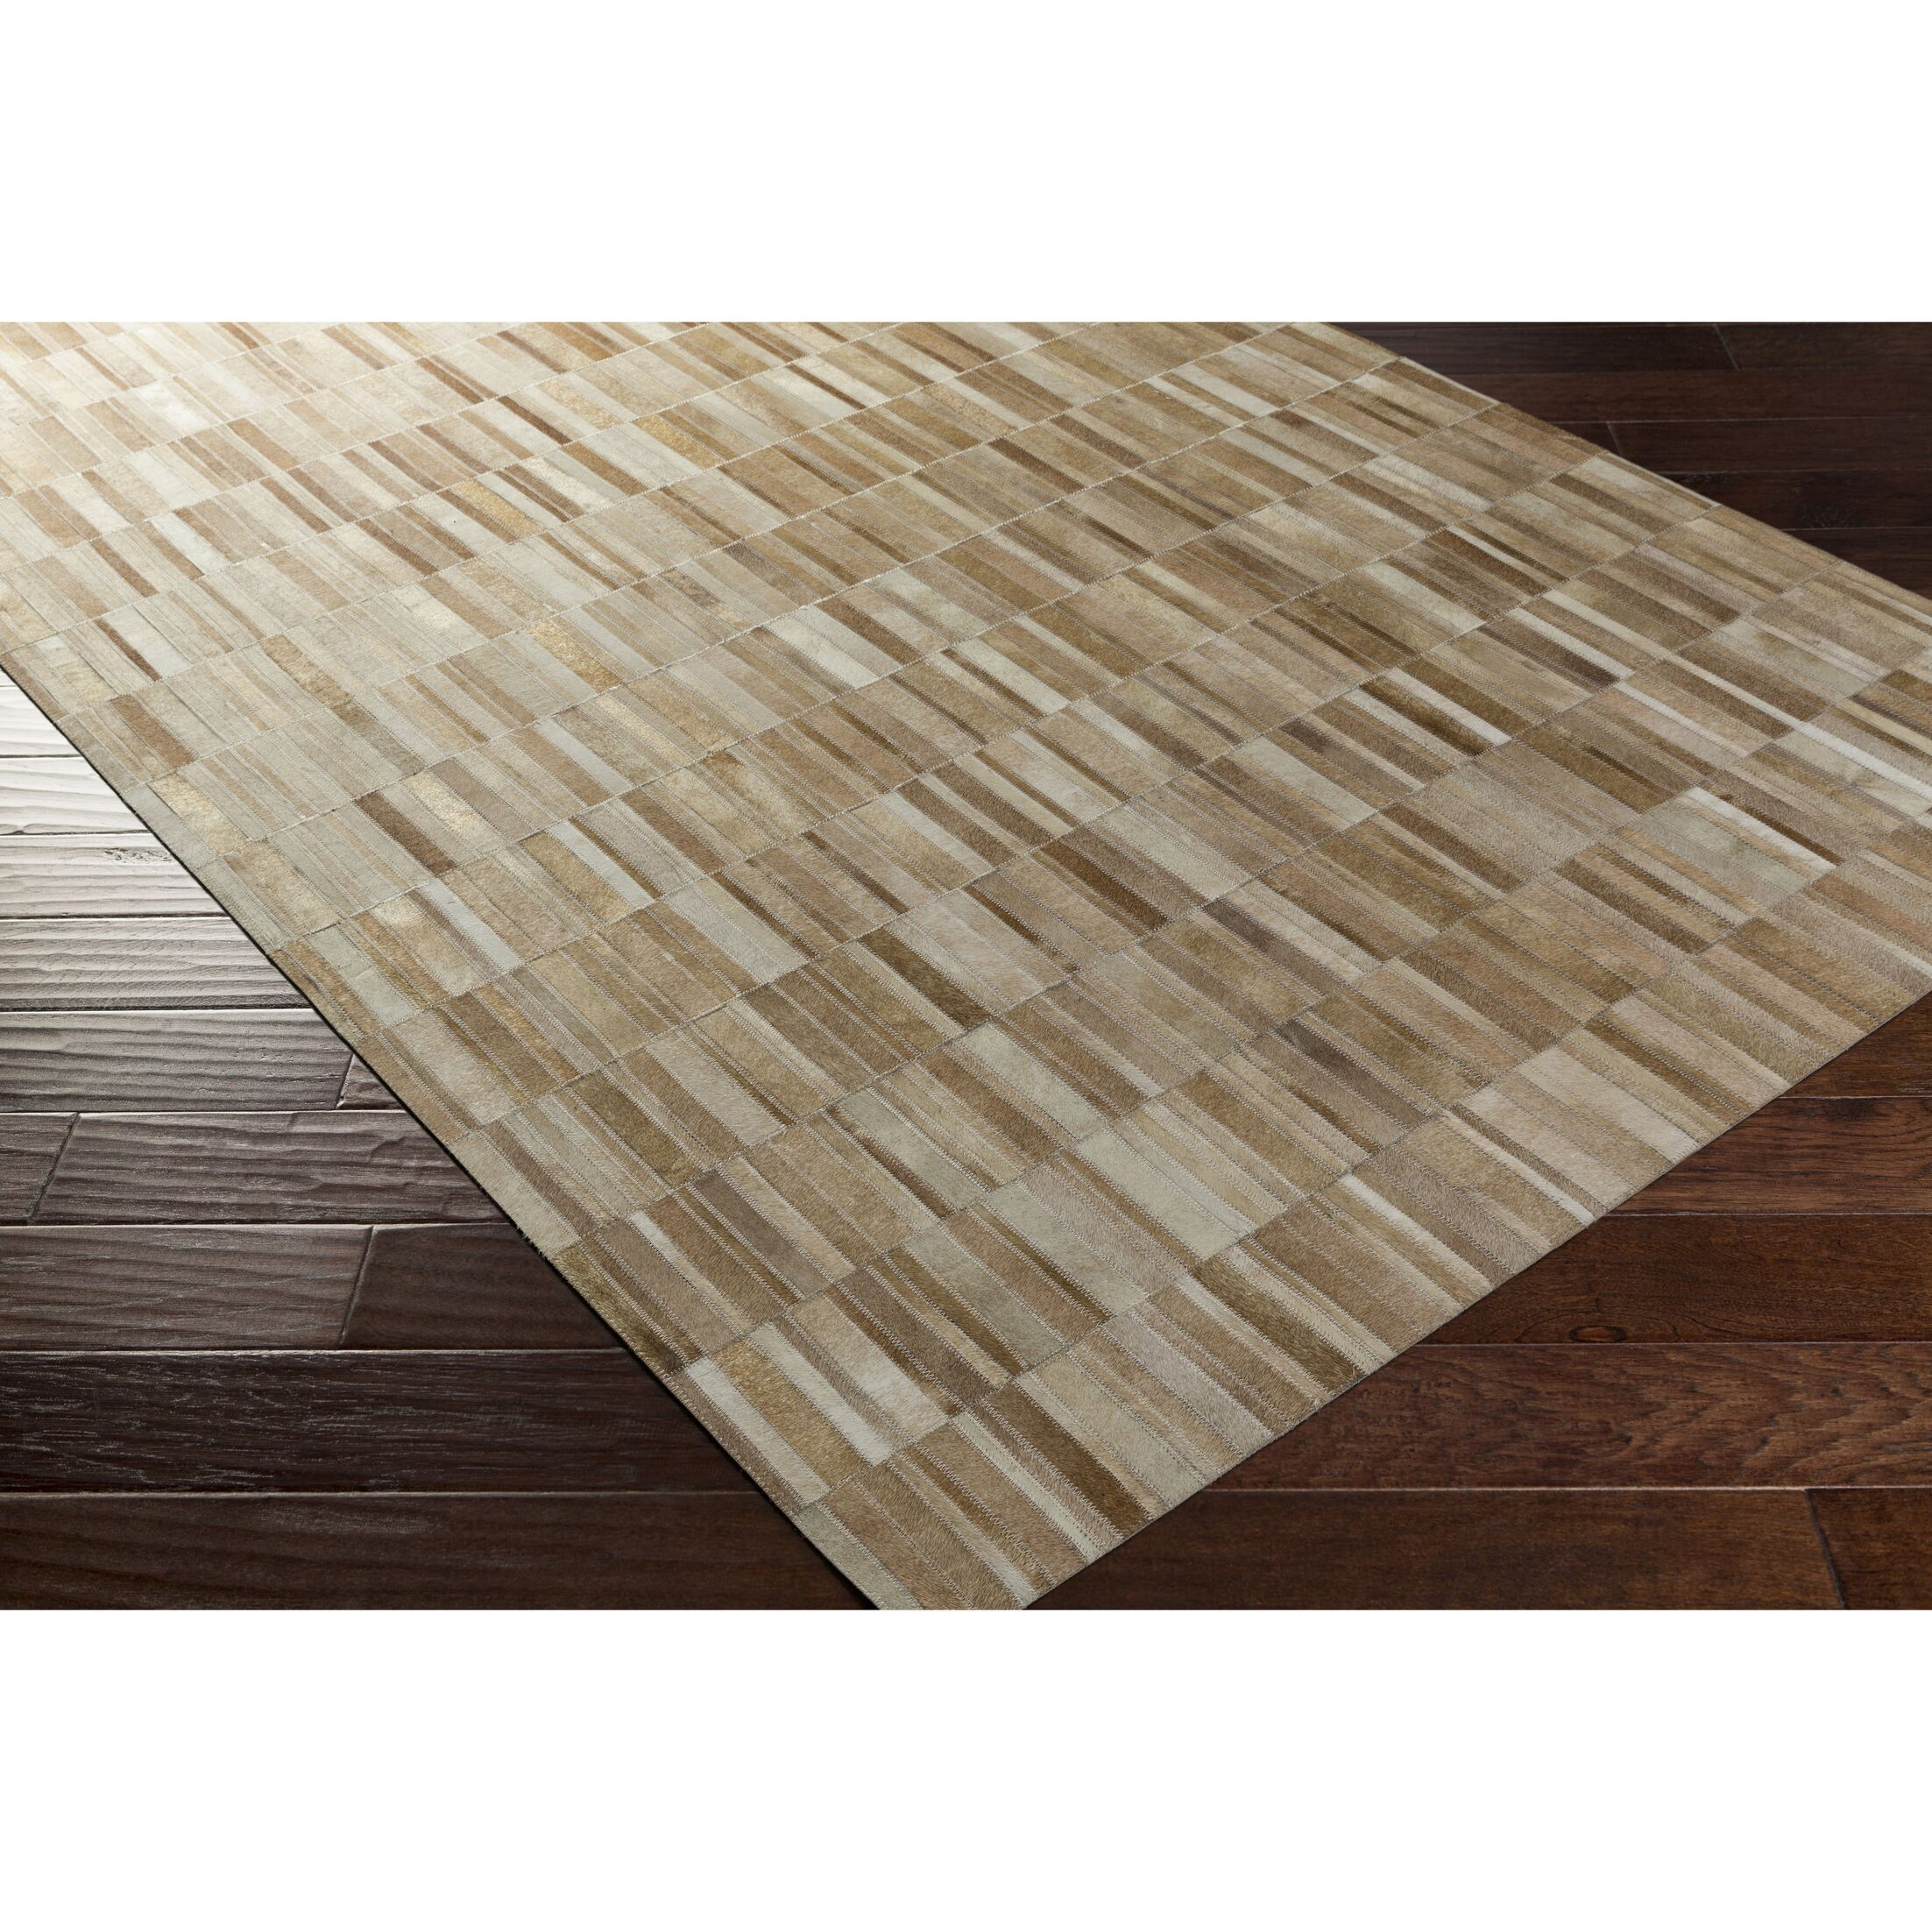 Pomeroy Hand-Crafted Brown/Neutral Area Rug Rug Size: Rectangle 8' x 10'